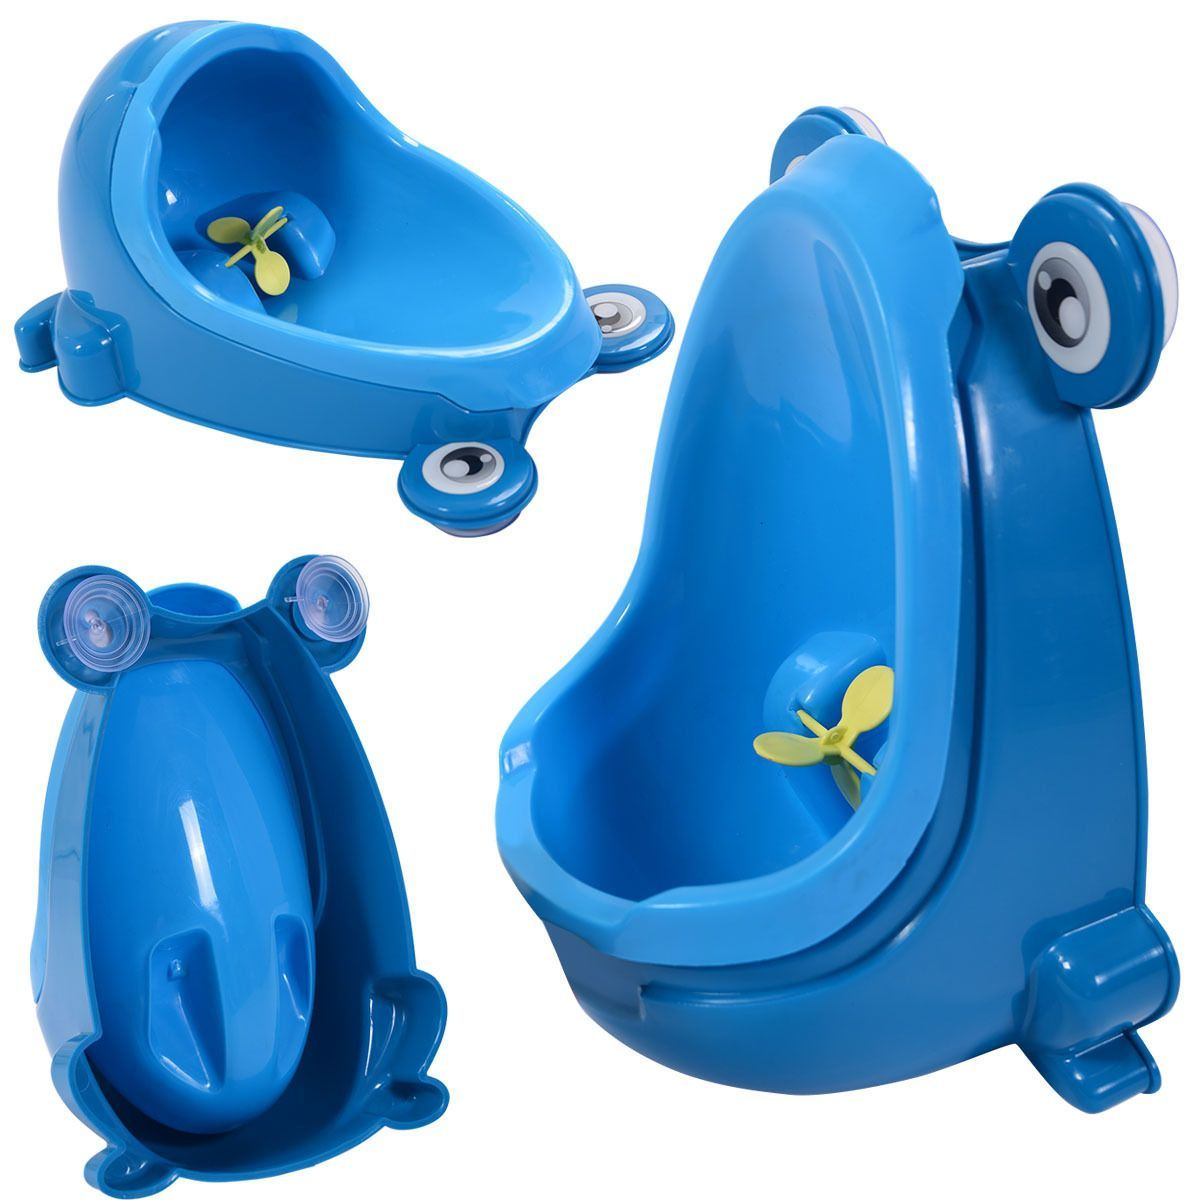 ae3a60f13e822 Blue Cute Frog Potty Training Urinal For Boys Kids With Funny Aiming Target